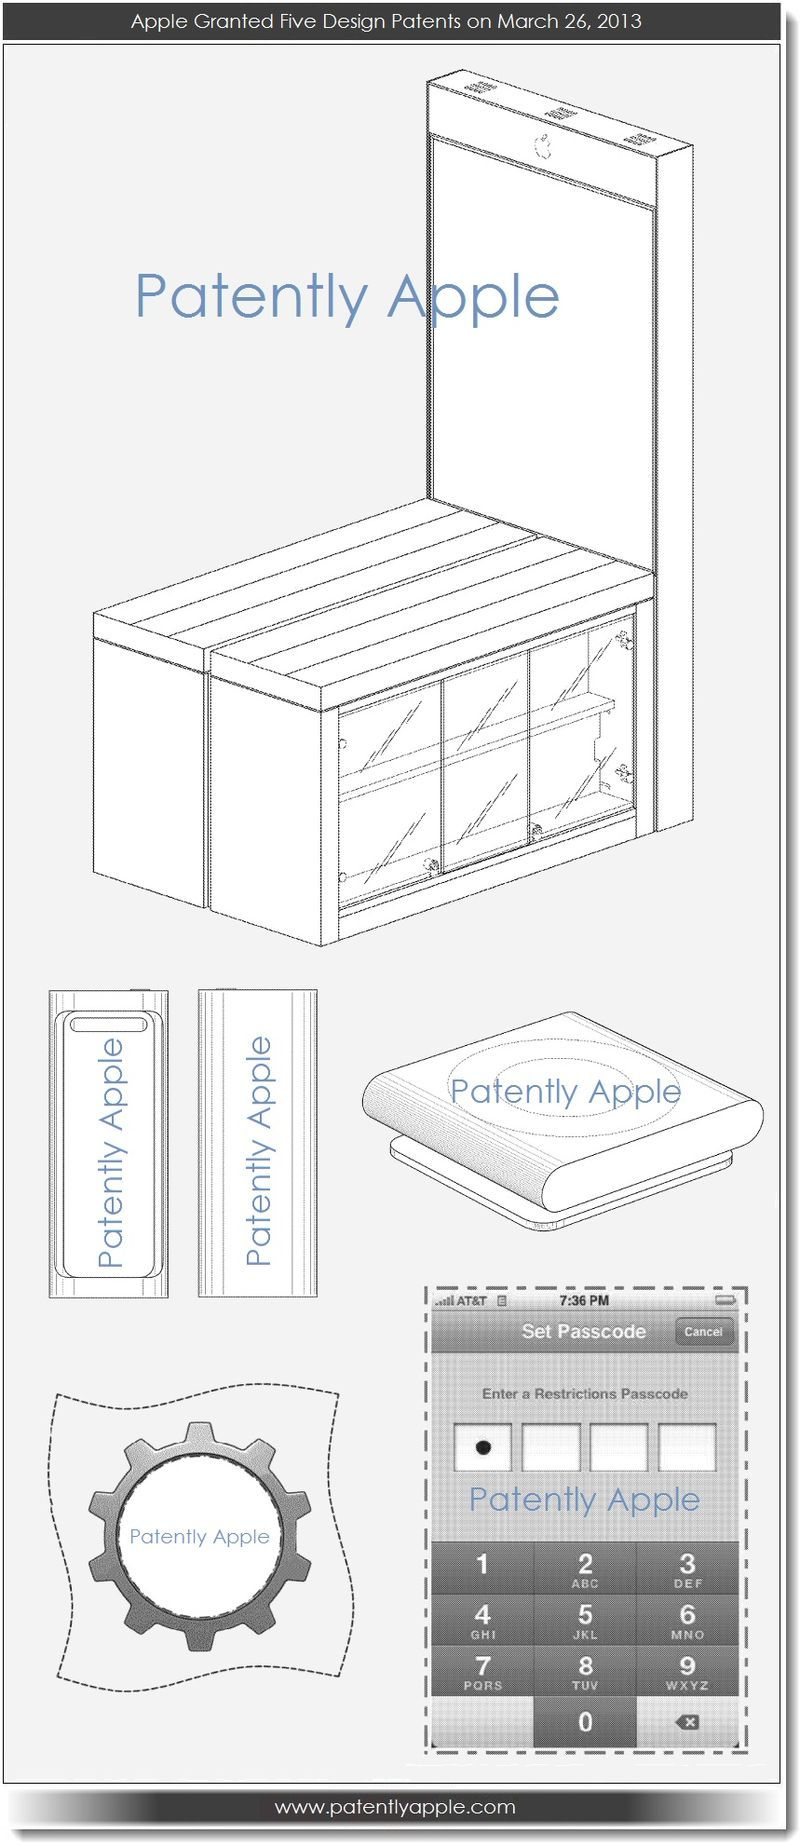 5. Apple granted 5 design patents March 26, 2013